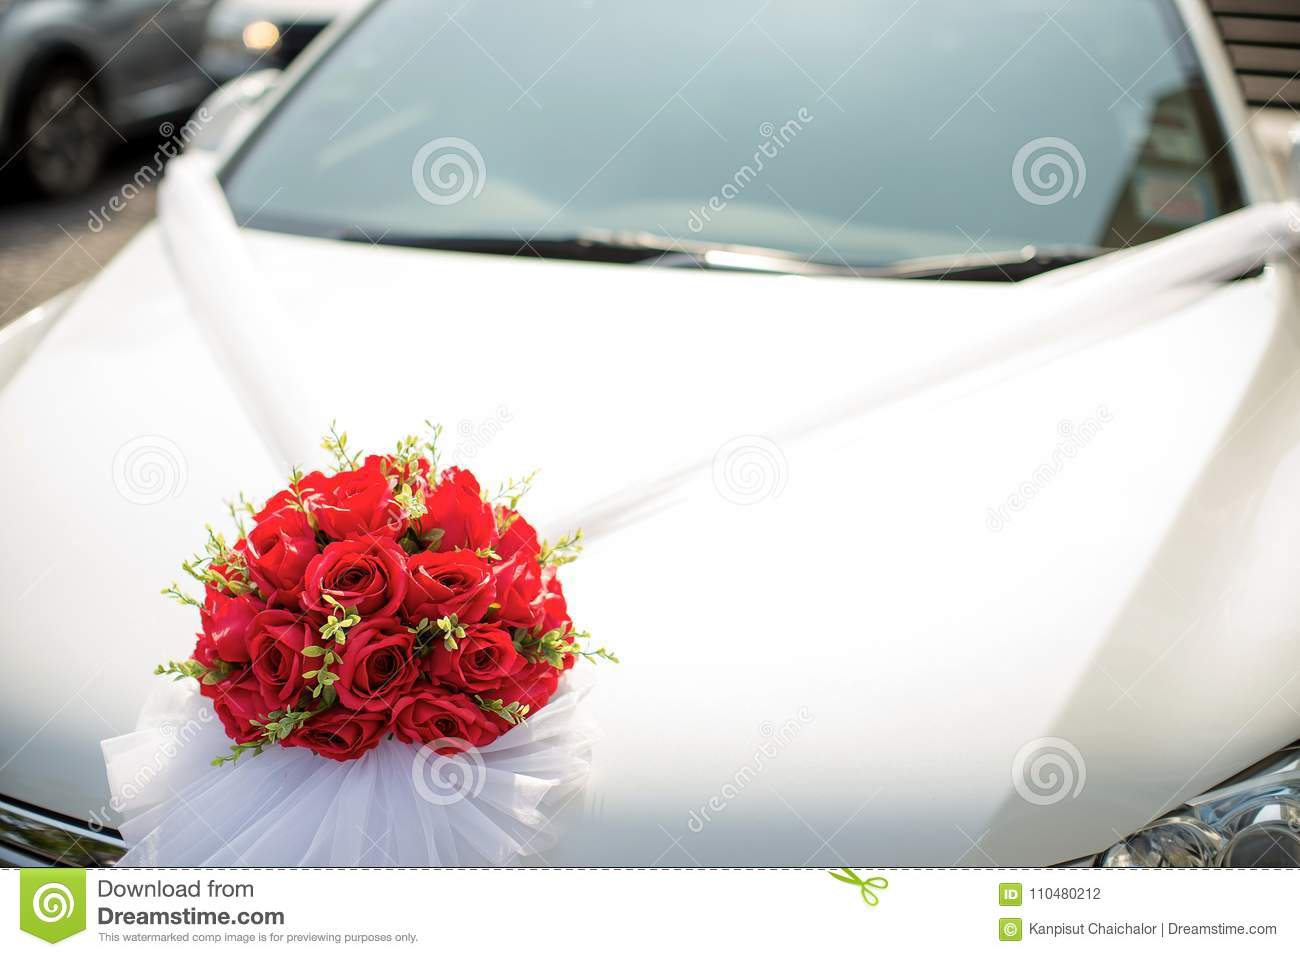 Wedding Car Wedding Decoration On Wedding Car Luxury Wedding Car